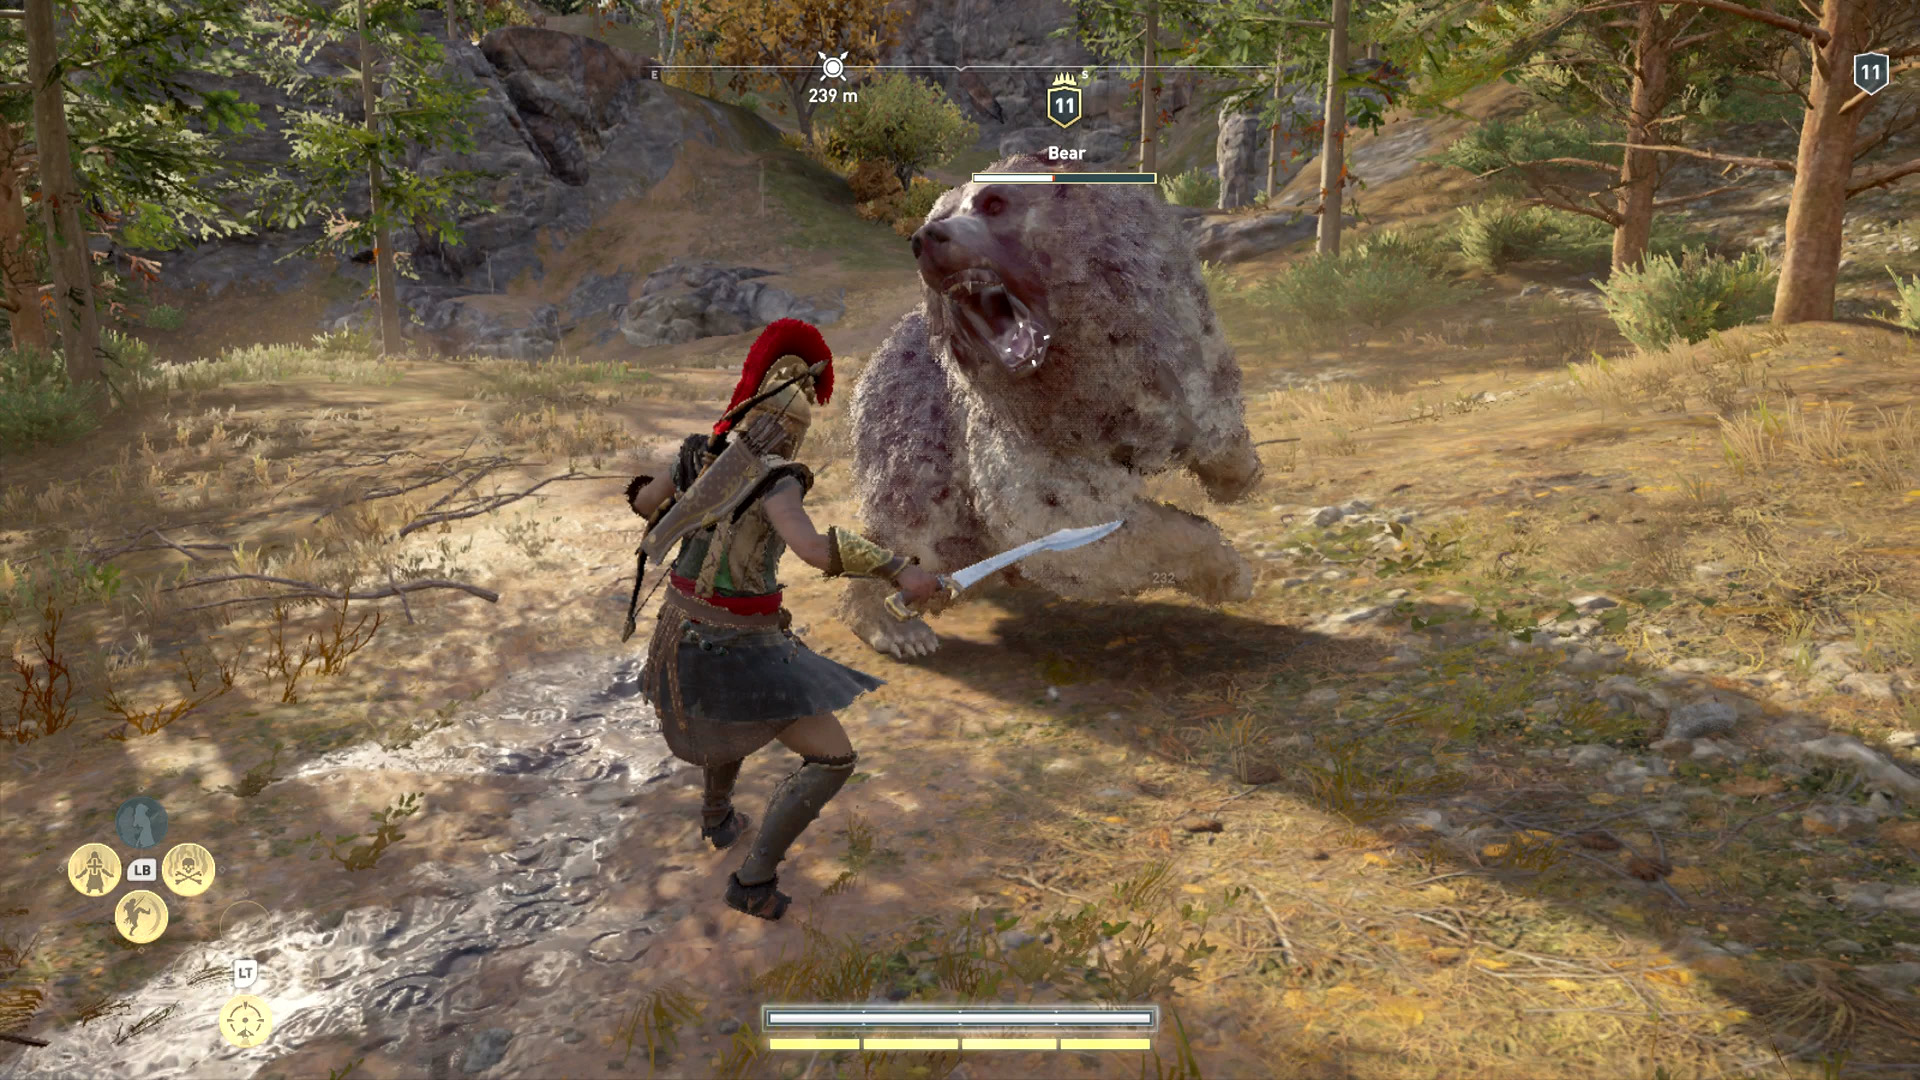 Kassandra is fighting an albino bear.